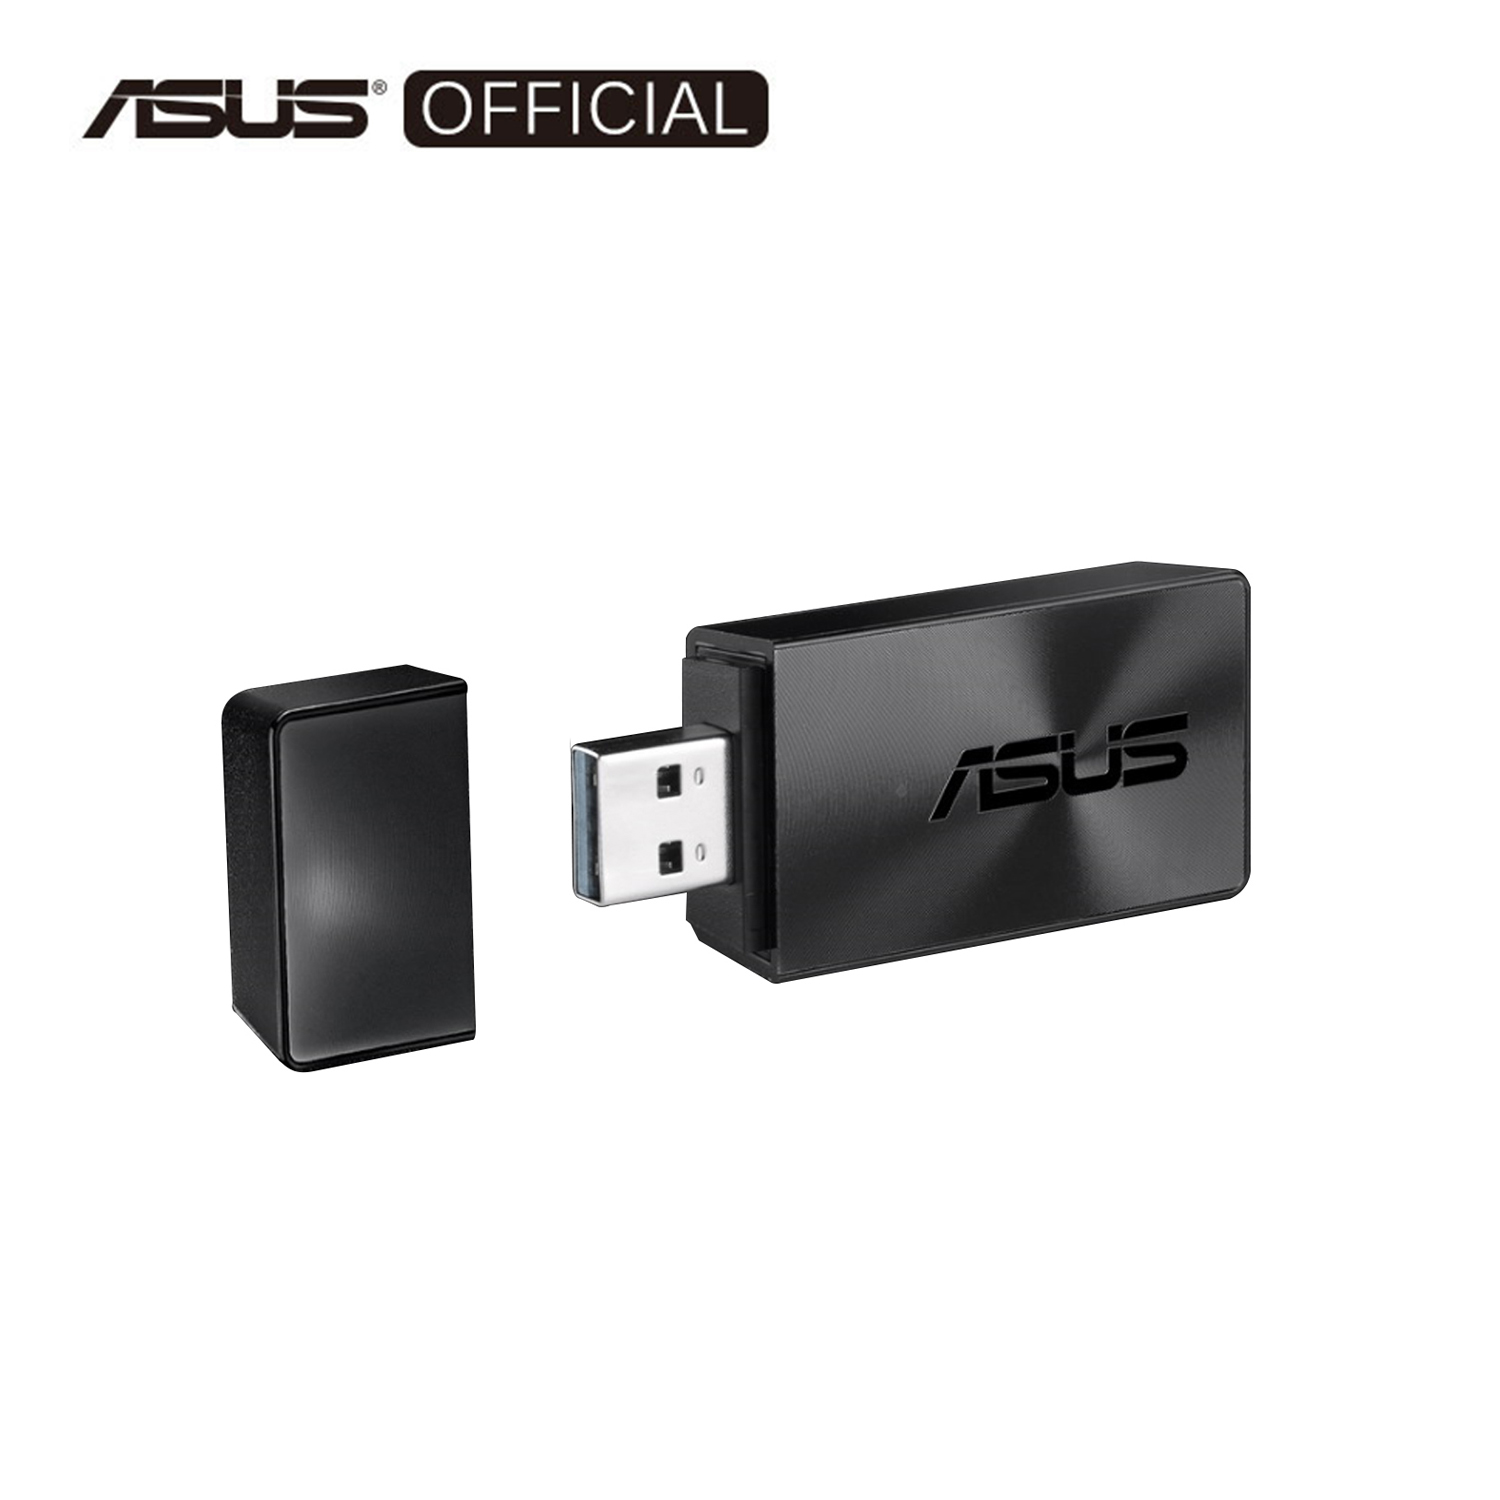 ASUS Dual Band 2.4GHz 5GHz USB WiFi Wireless Adapter (USB-AC57)